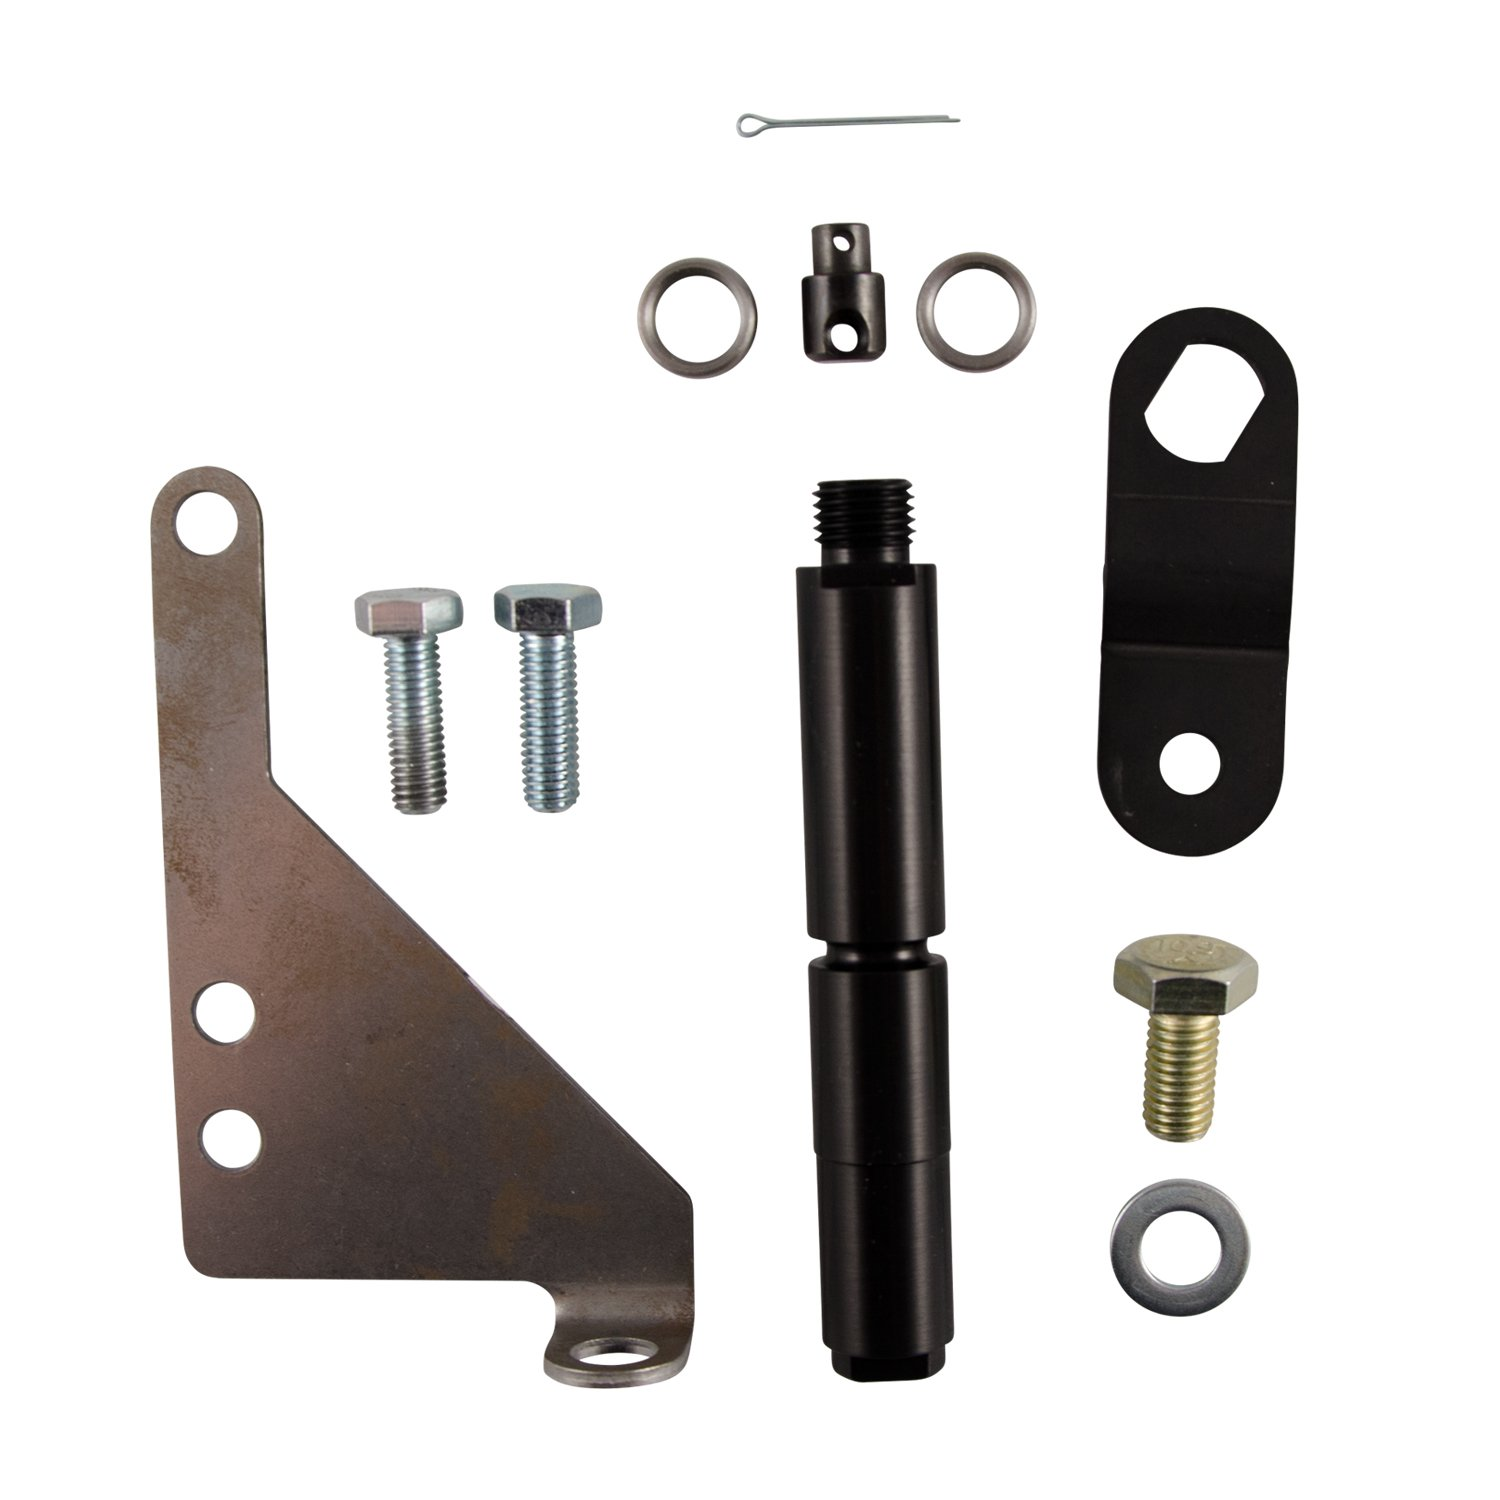 B&M 40505 Bracket and Lever Kit for Ford E40D/4R100 Automatic Transmissions by B&M